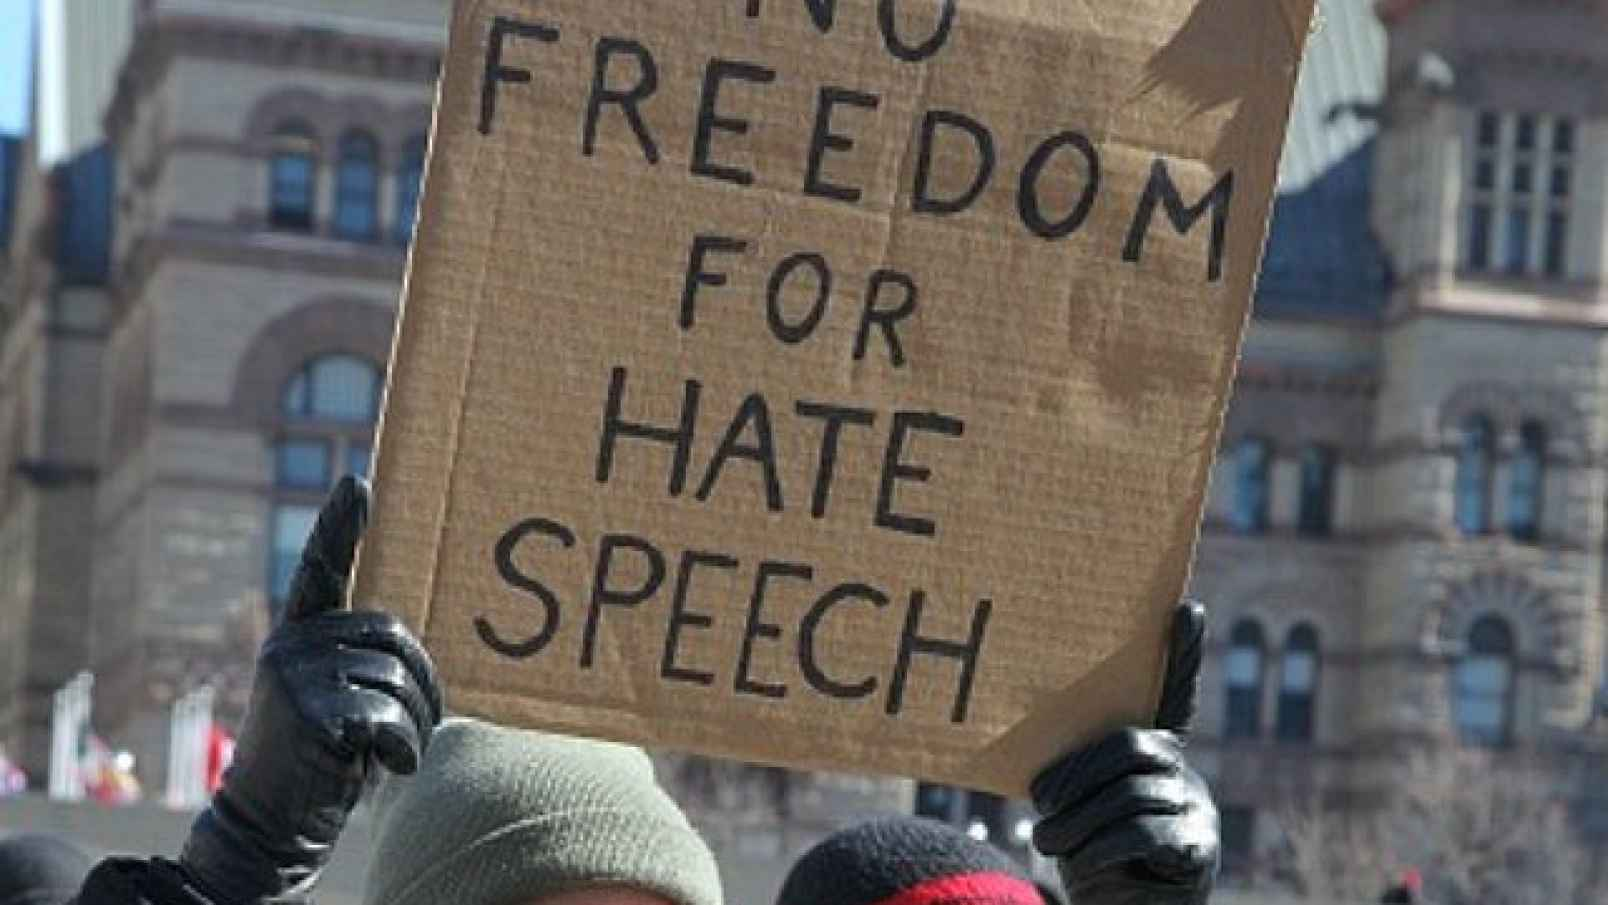 hate speeches the right to freedom of speech A short article by writer and activist, jillian york, exploring the difficulty of minimising cyberbullying while protecting the right to freedom of speech.